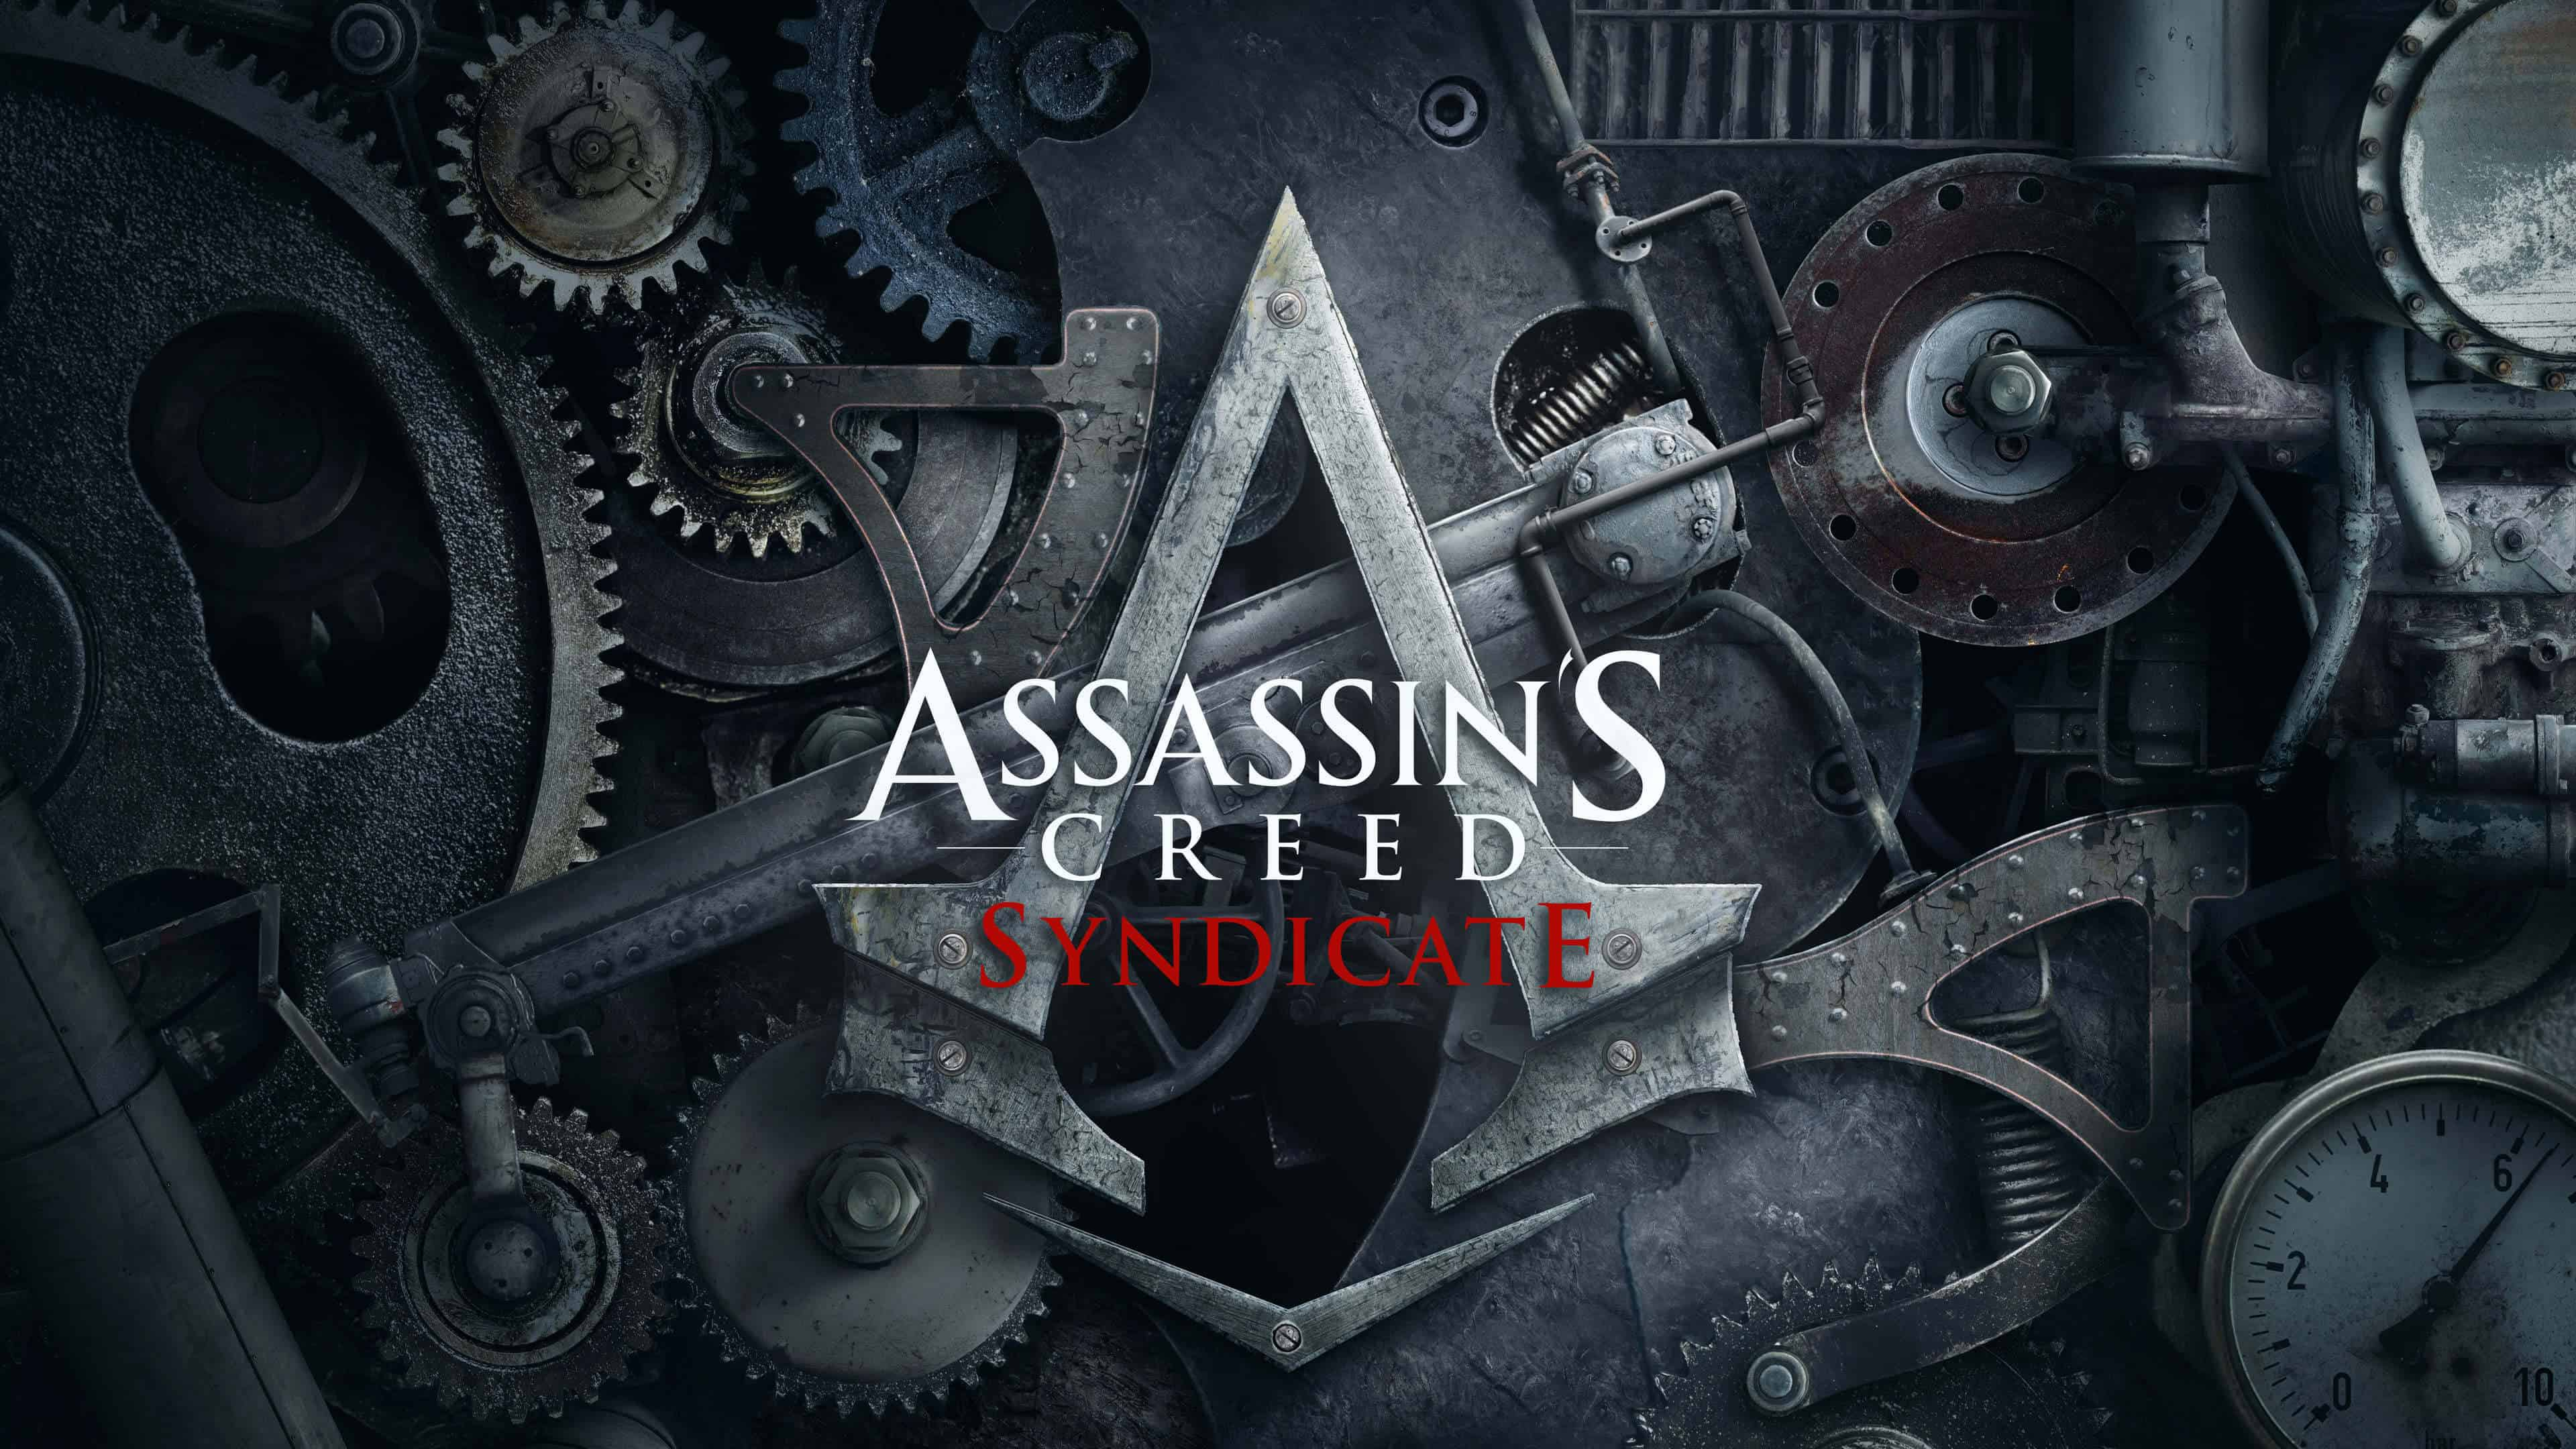 Assassins Creed Syndicate Logo Uhd 4k Wallpaper Pixelz Cc